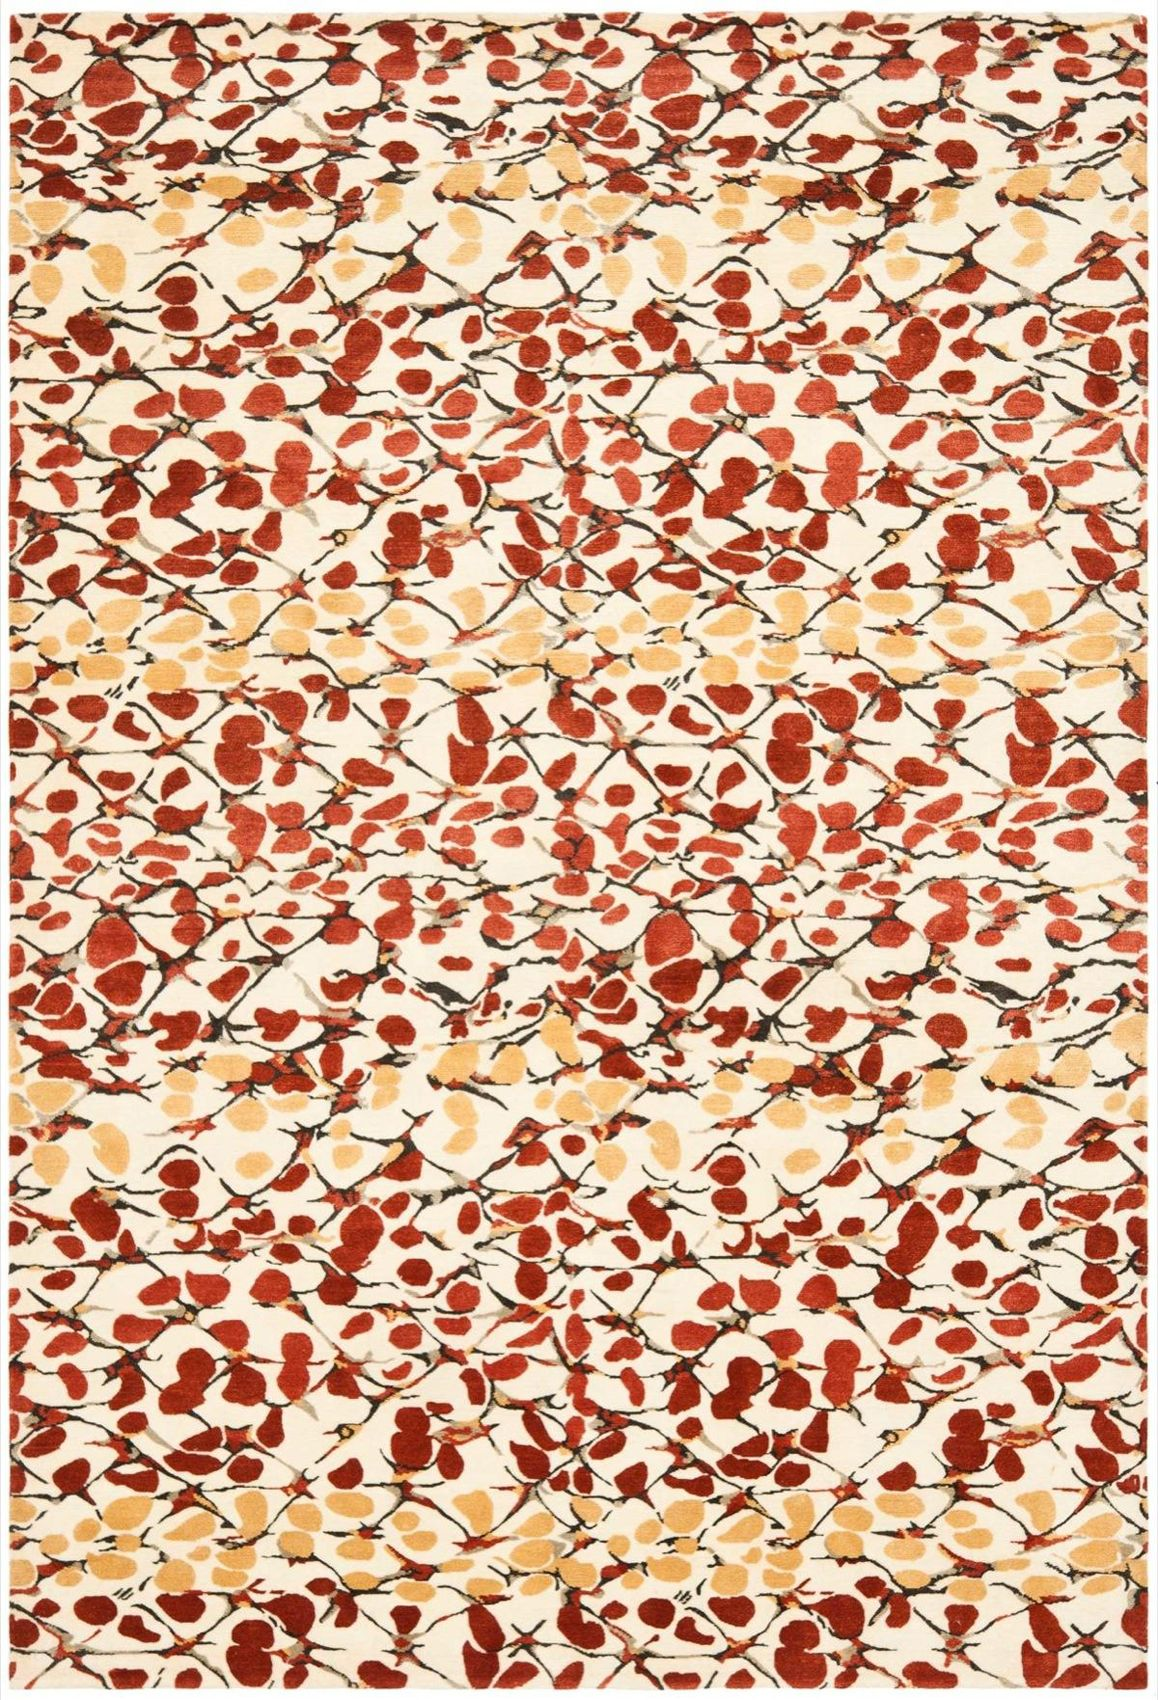 Displaying an abstract design of stylized branches, brambles, and flower buds, Martha Stewart's Abstract Trellis Barn Red rugs are more like a painting for the floor that will add life to any interior. Originating from Nepal and crafted from fine hand knotted silk and wool, the Abstract Trellis Barn Red rug is an elegant addition to Safavieh transitional rugs. Martha Stewart is   http://www.cyrusrugs.com/safavieh-rugs-martha-stewart-item-13651&category_id=0